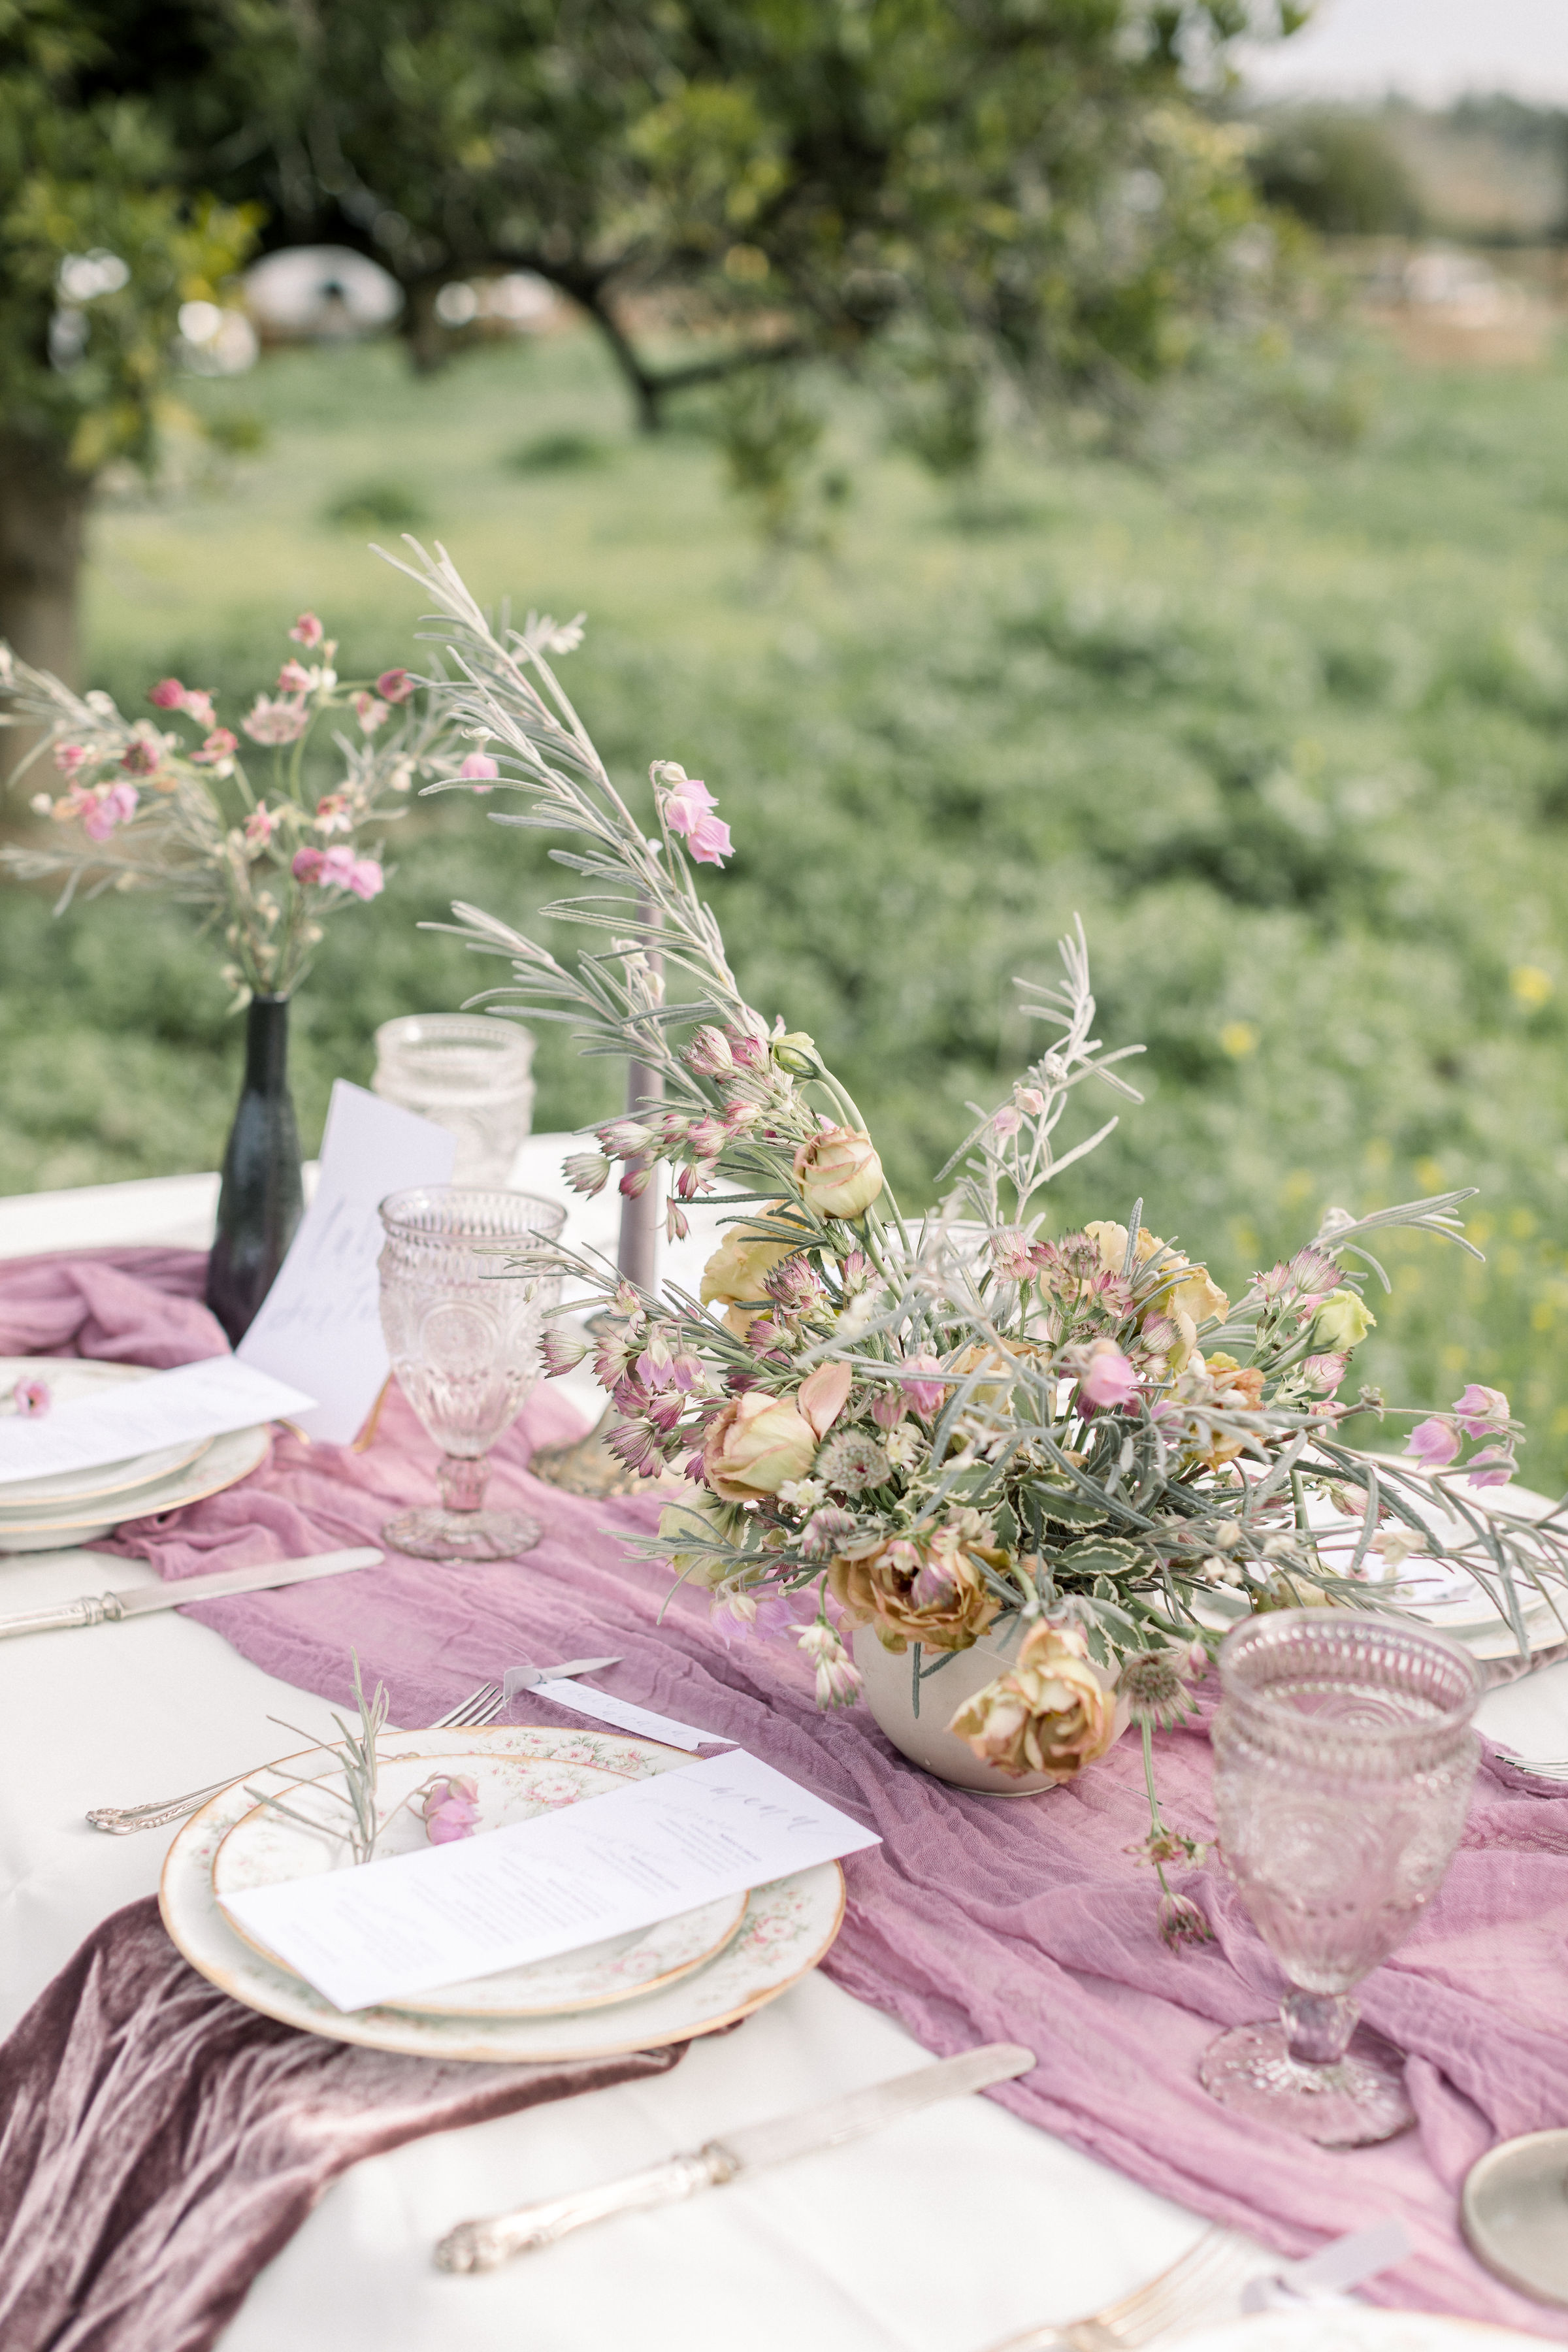 StephanieWeberPhotography-Gray and Purple Tablescape – Bloom Theory Wedding Reception Centerpiece